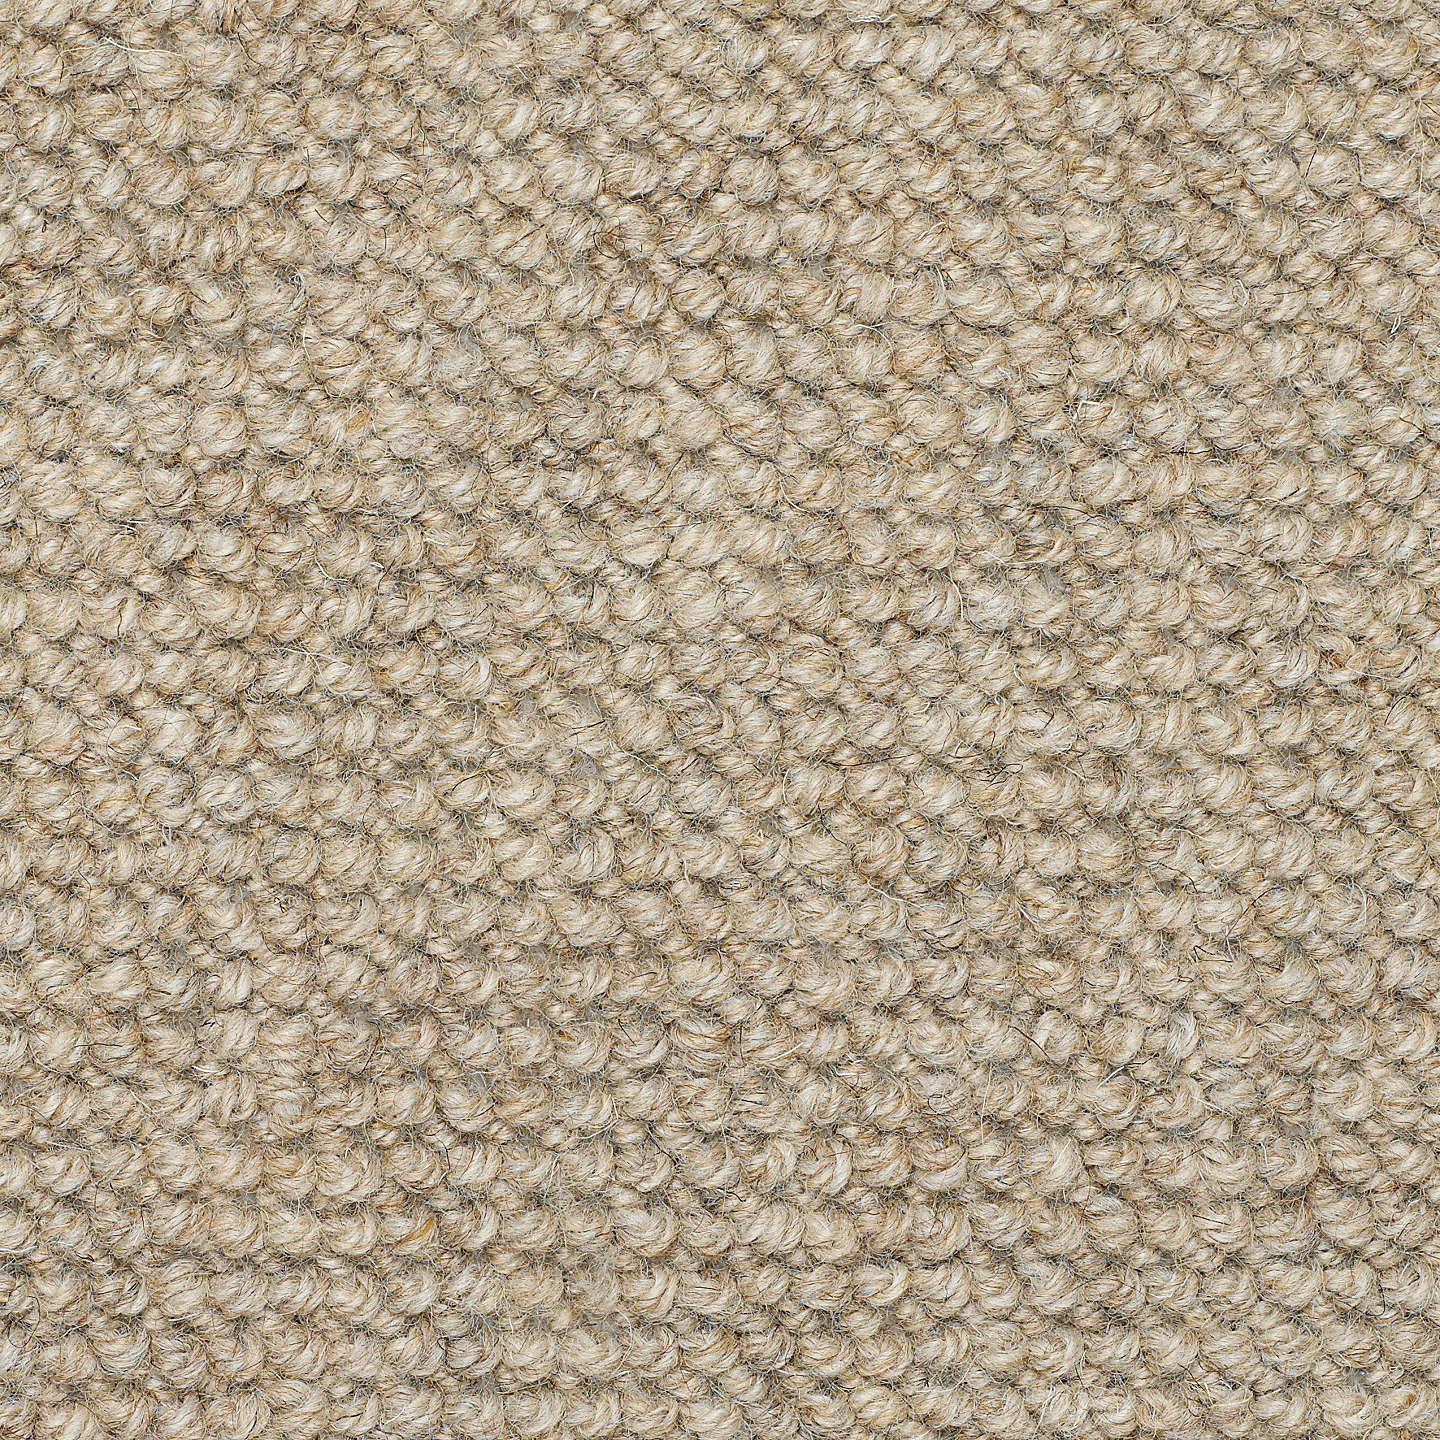 Wool Loop Rug: John Lewis Rustic Braid 4 Ply Wool Loop Carpet At John Lewis